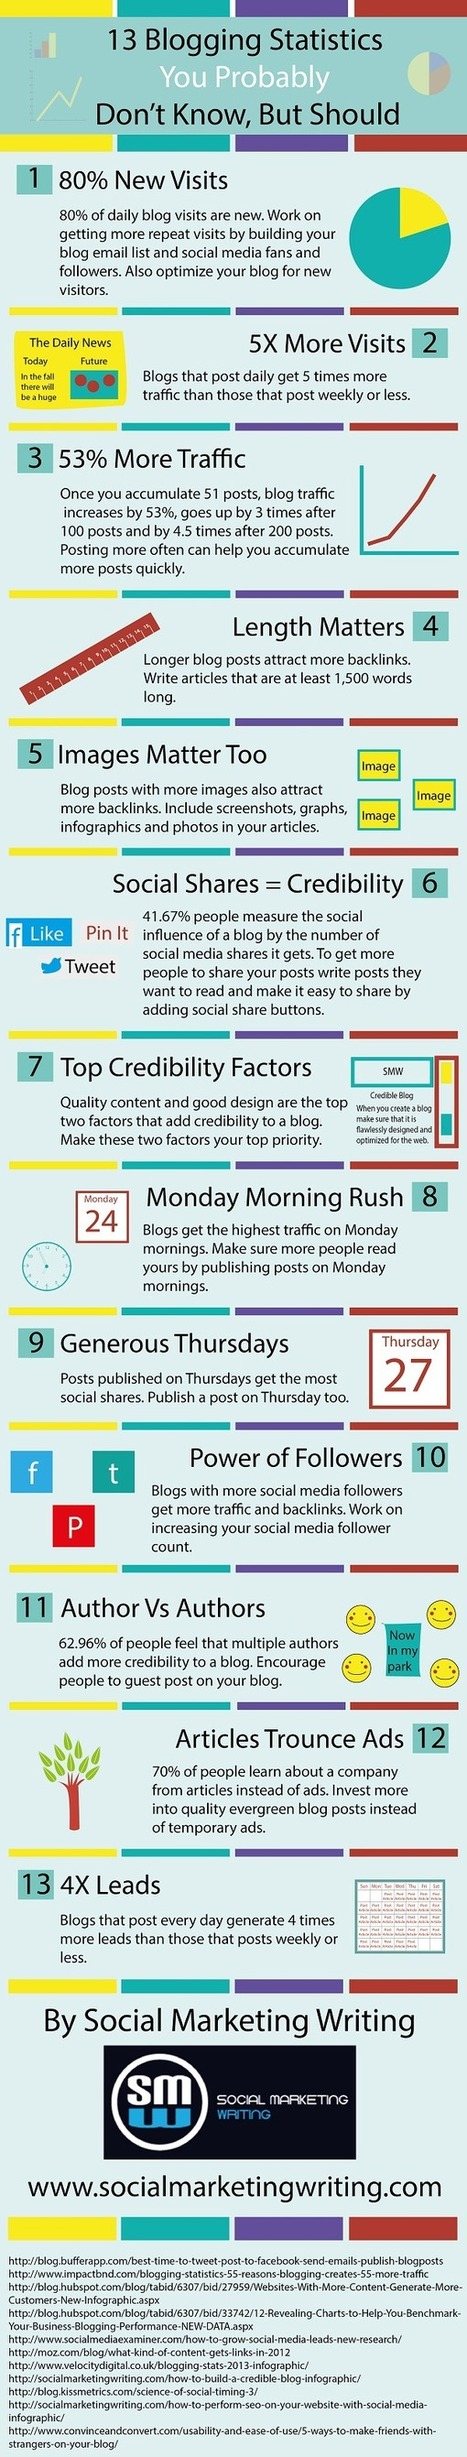 13 Blogging Statistics You Probably Don't Know, But Should [Infographic] | Content Creation, Curation, Management | Scoop.it